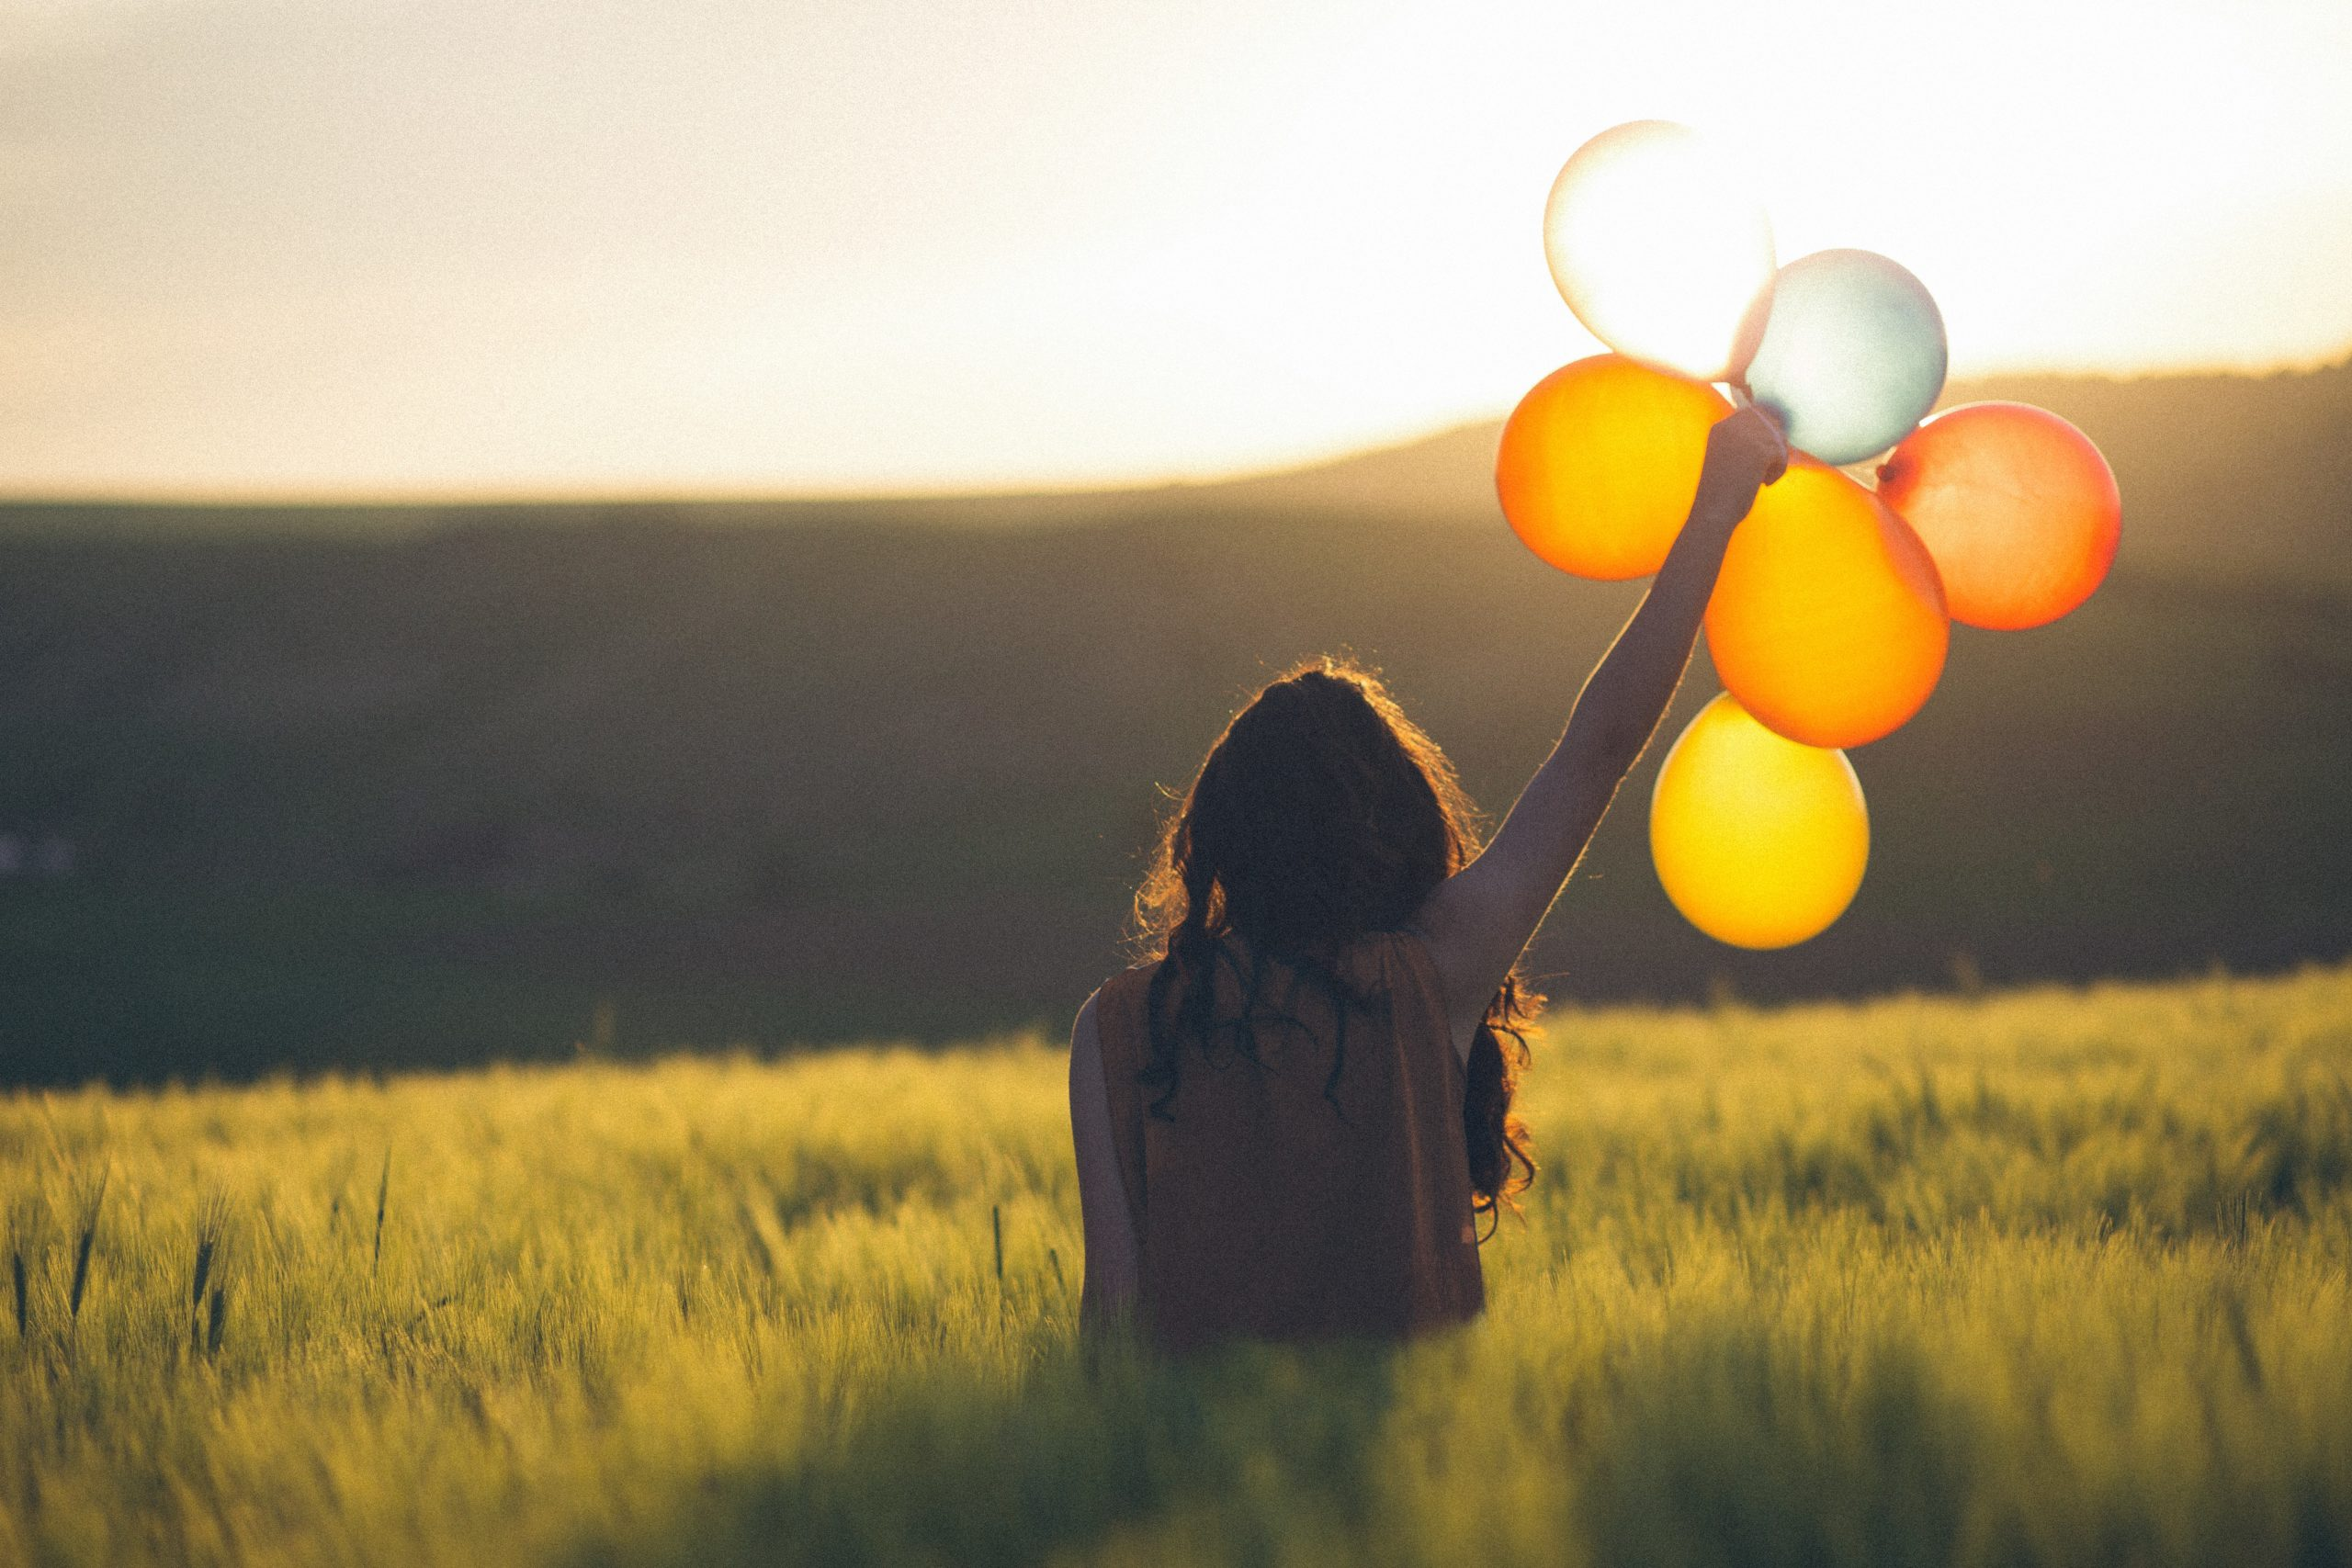 How to find inner happiness